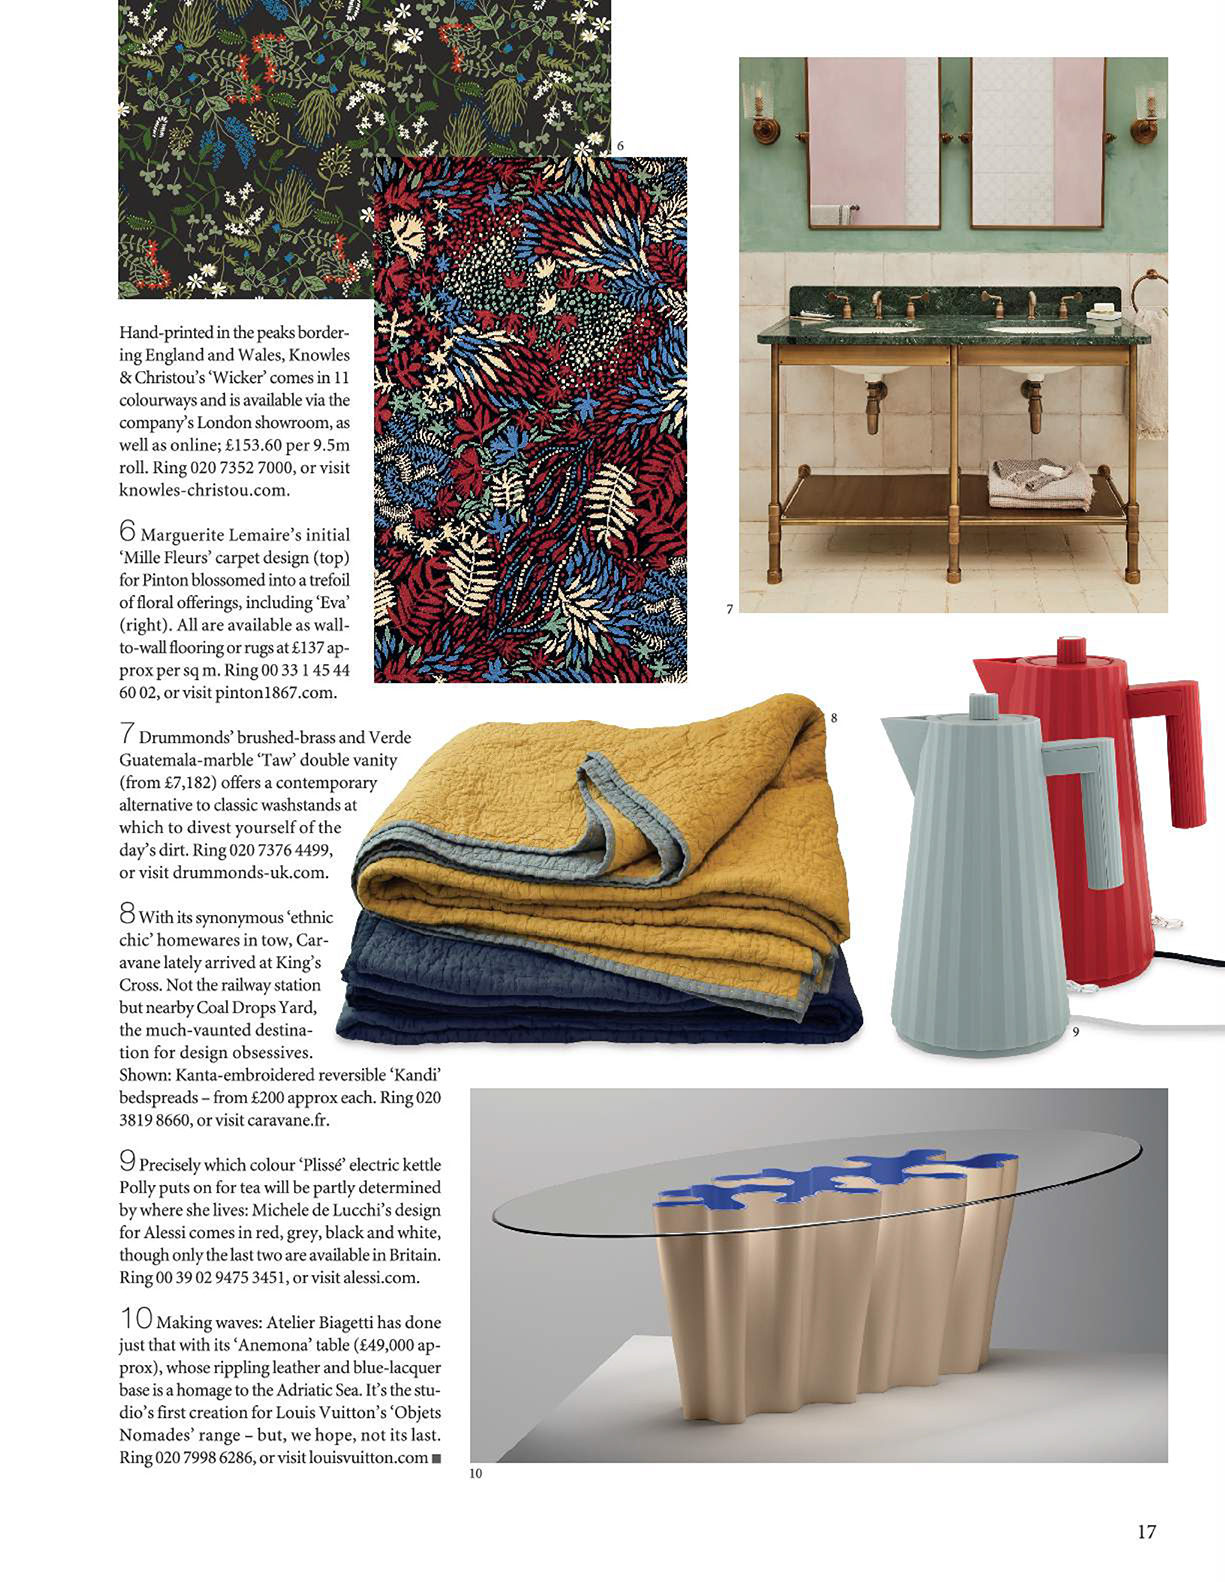 The World of Interiors Wicker feature p2 February 2019